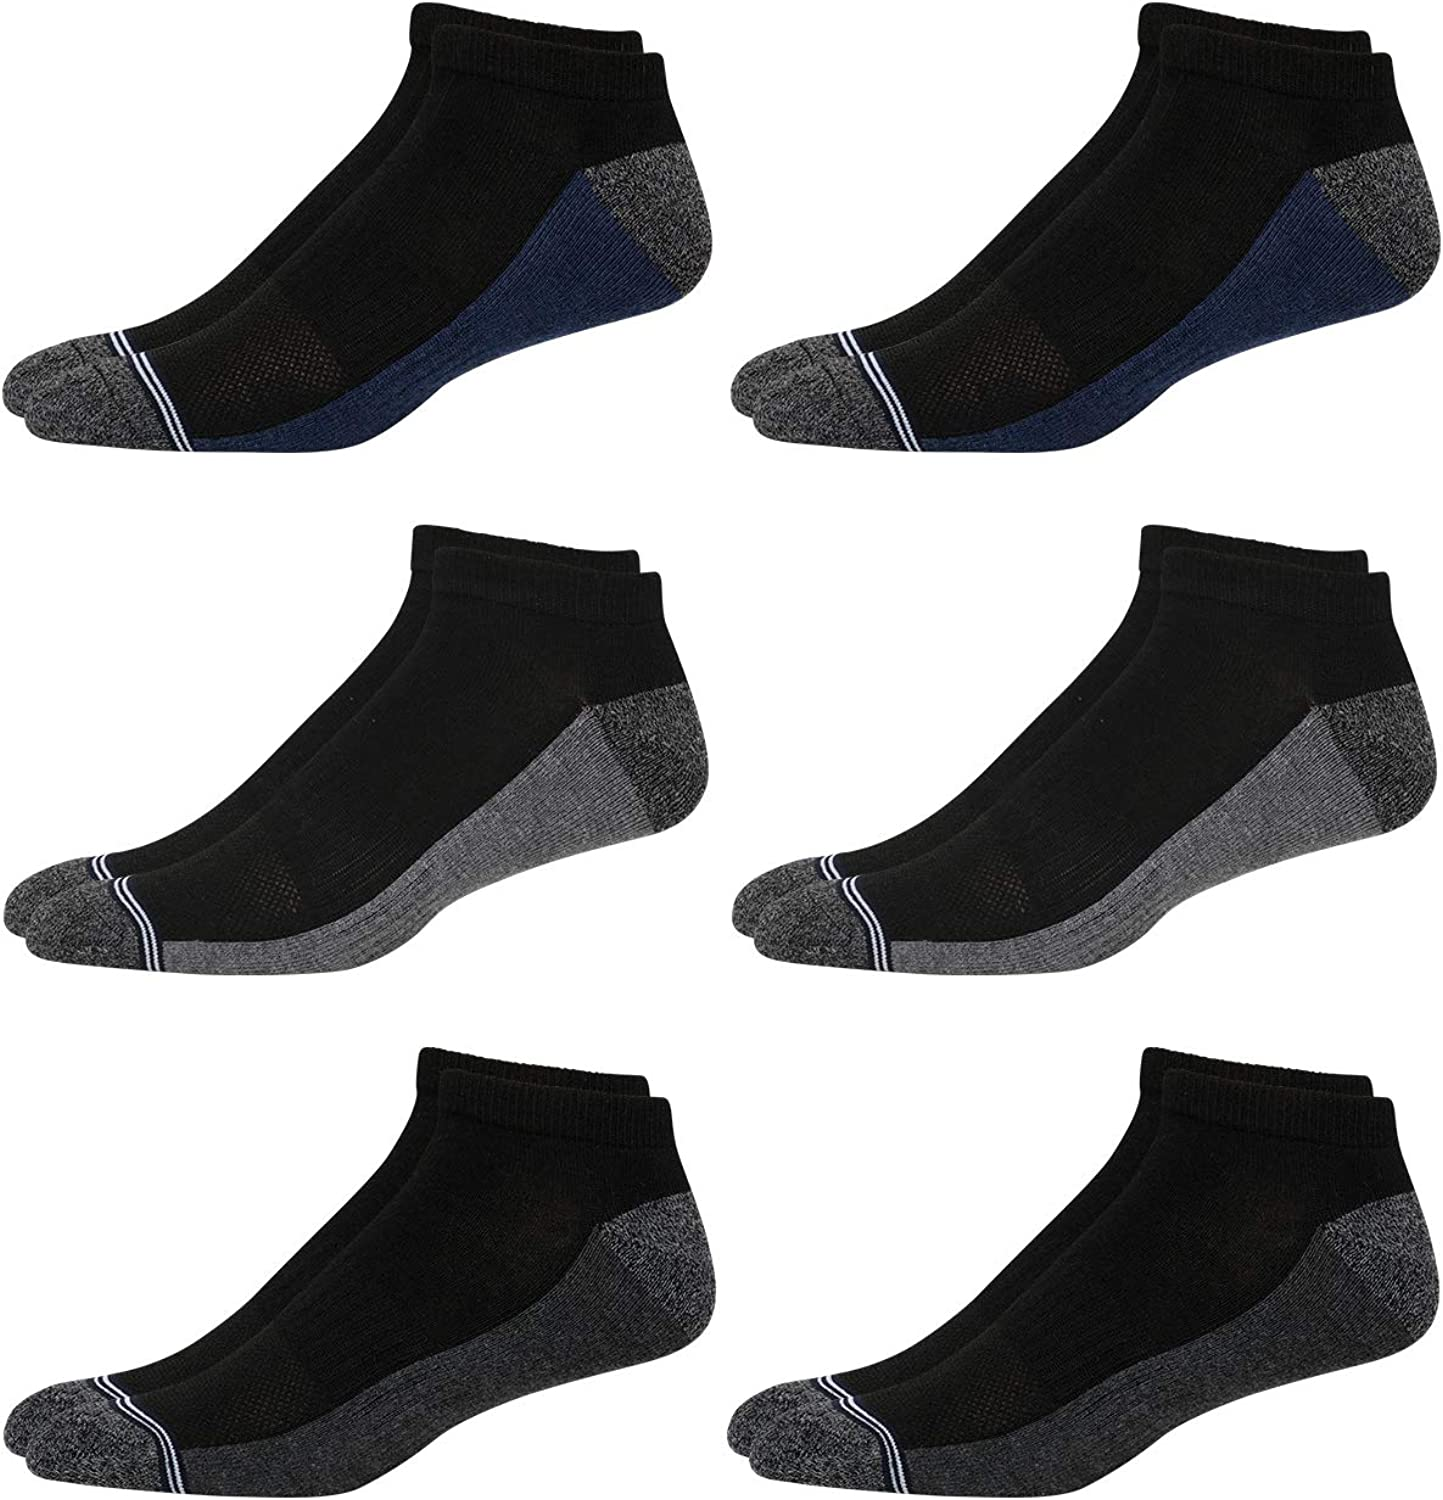 Nautica Men's Athletic Low Cut Cushioned Socks (6 Pack)